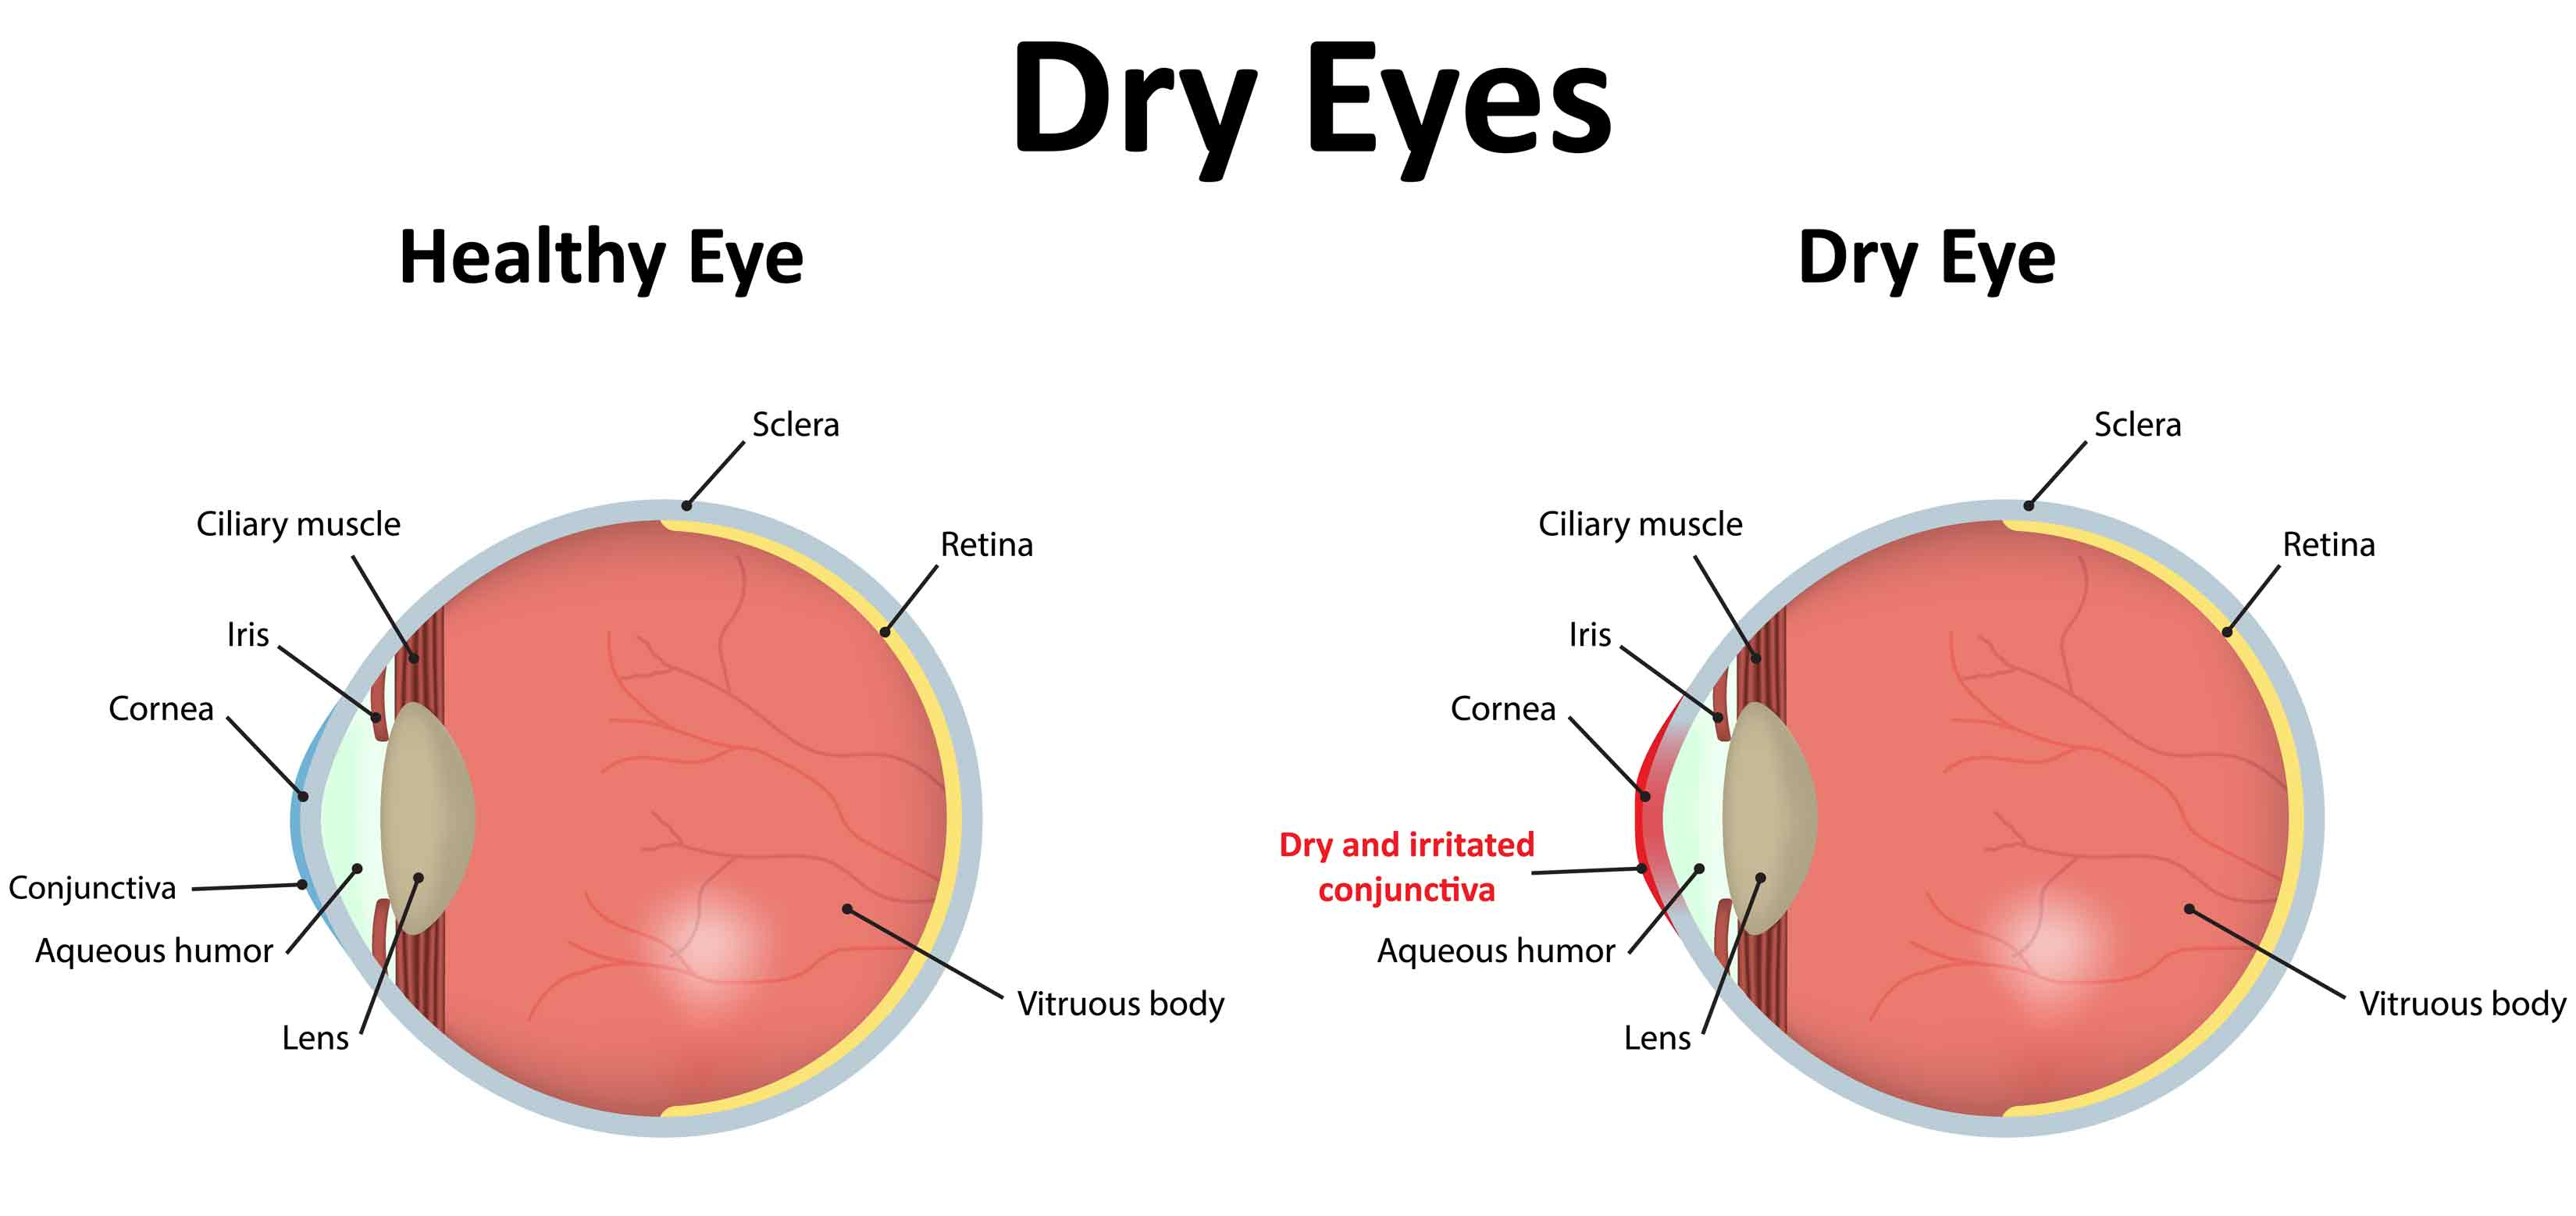 Watch out for Dry Eyes in Winter